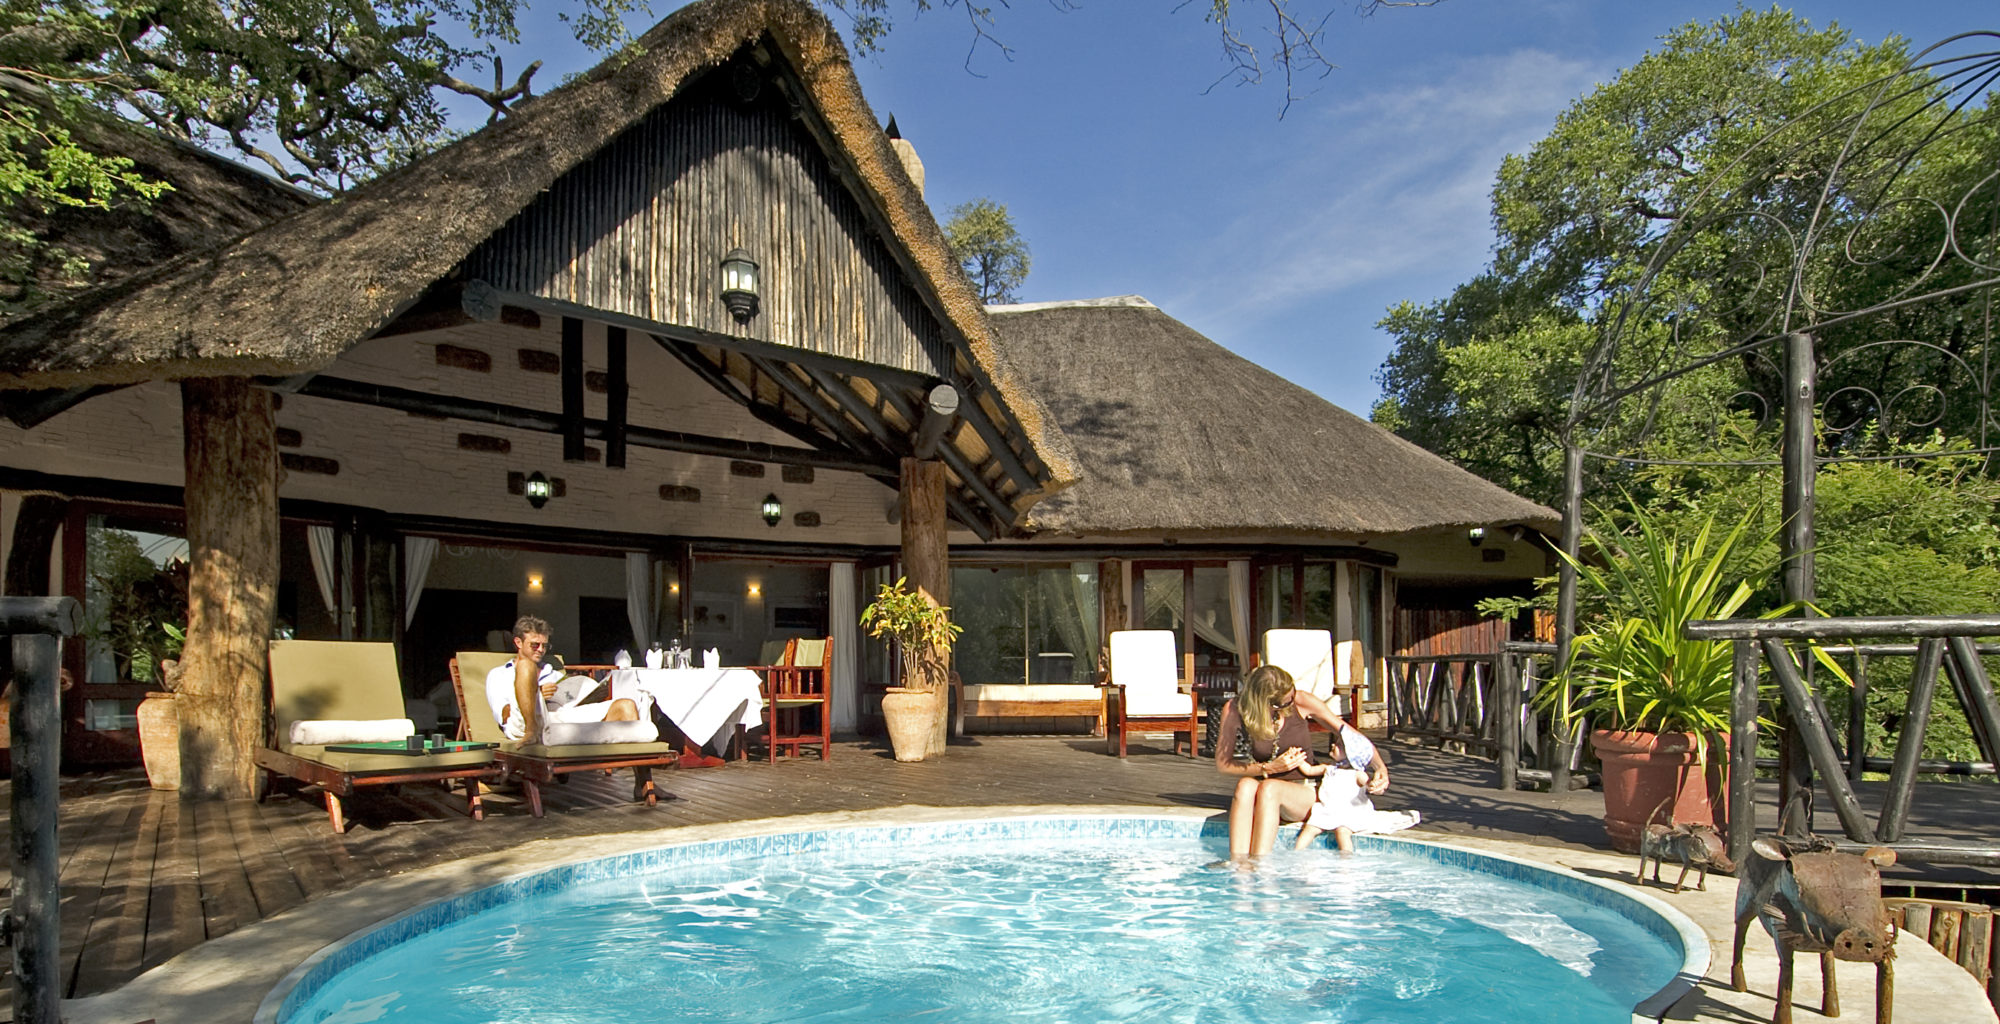 Sussi-and-chuma-zambia-pool